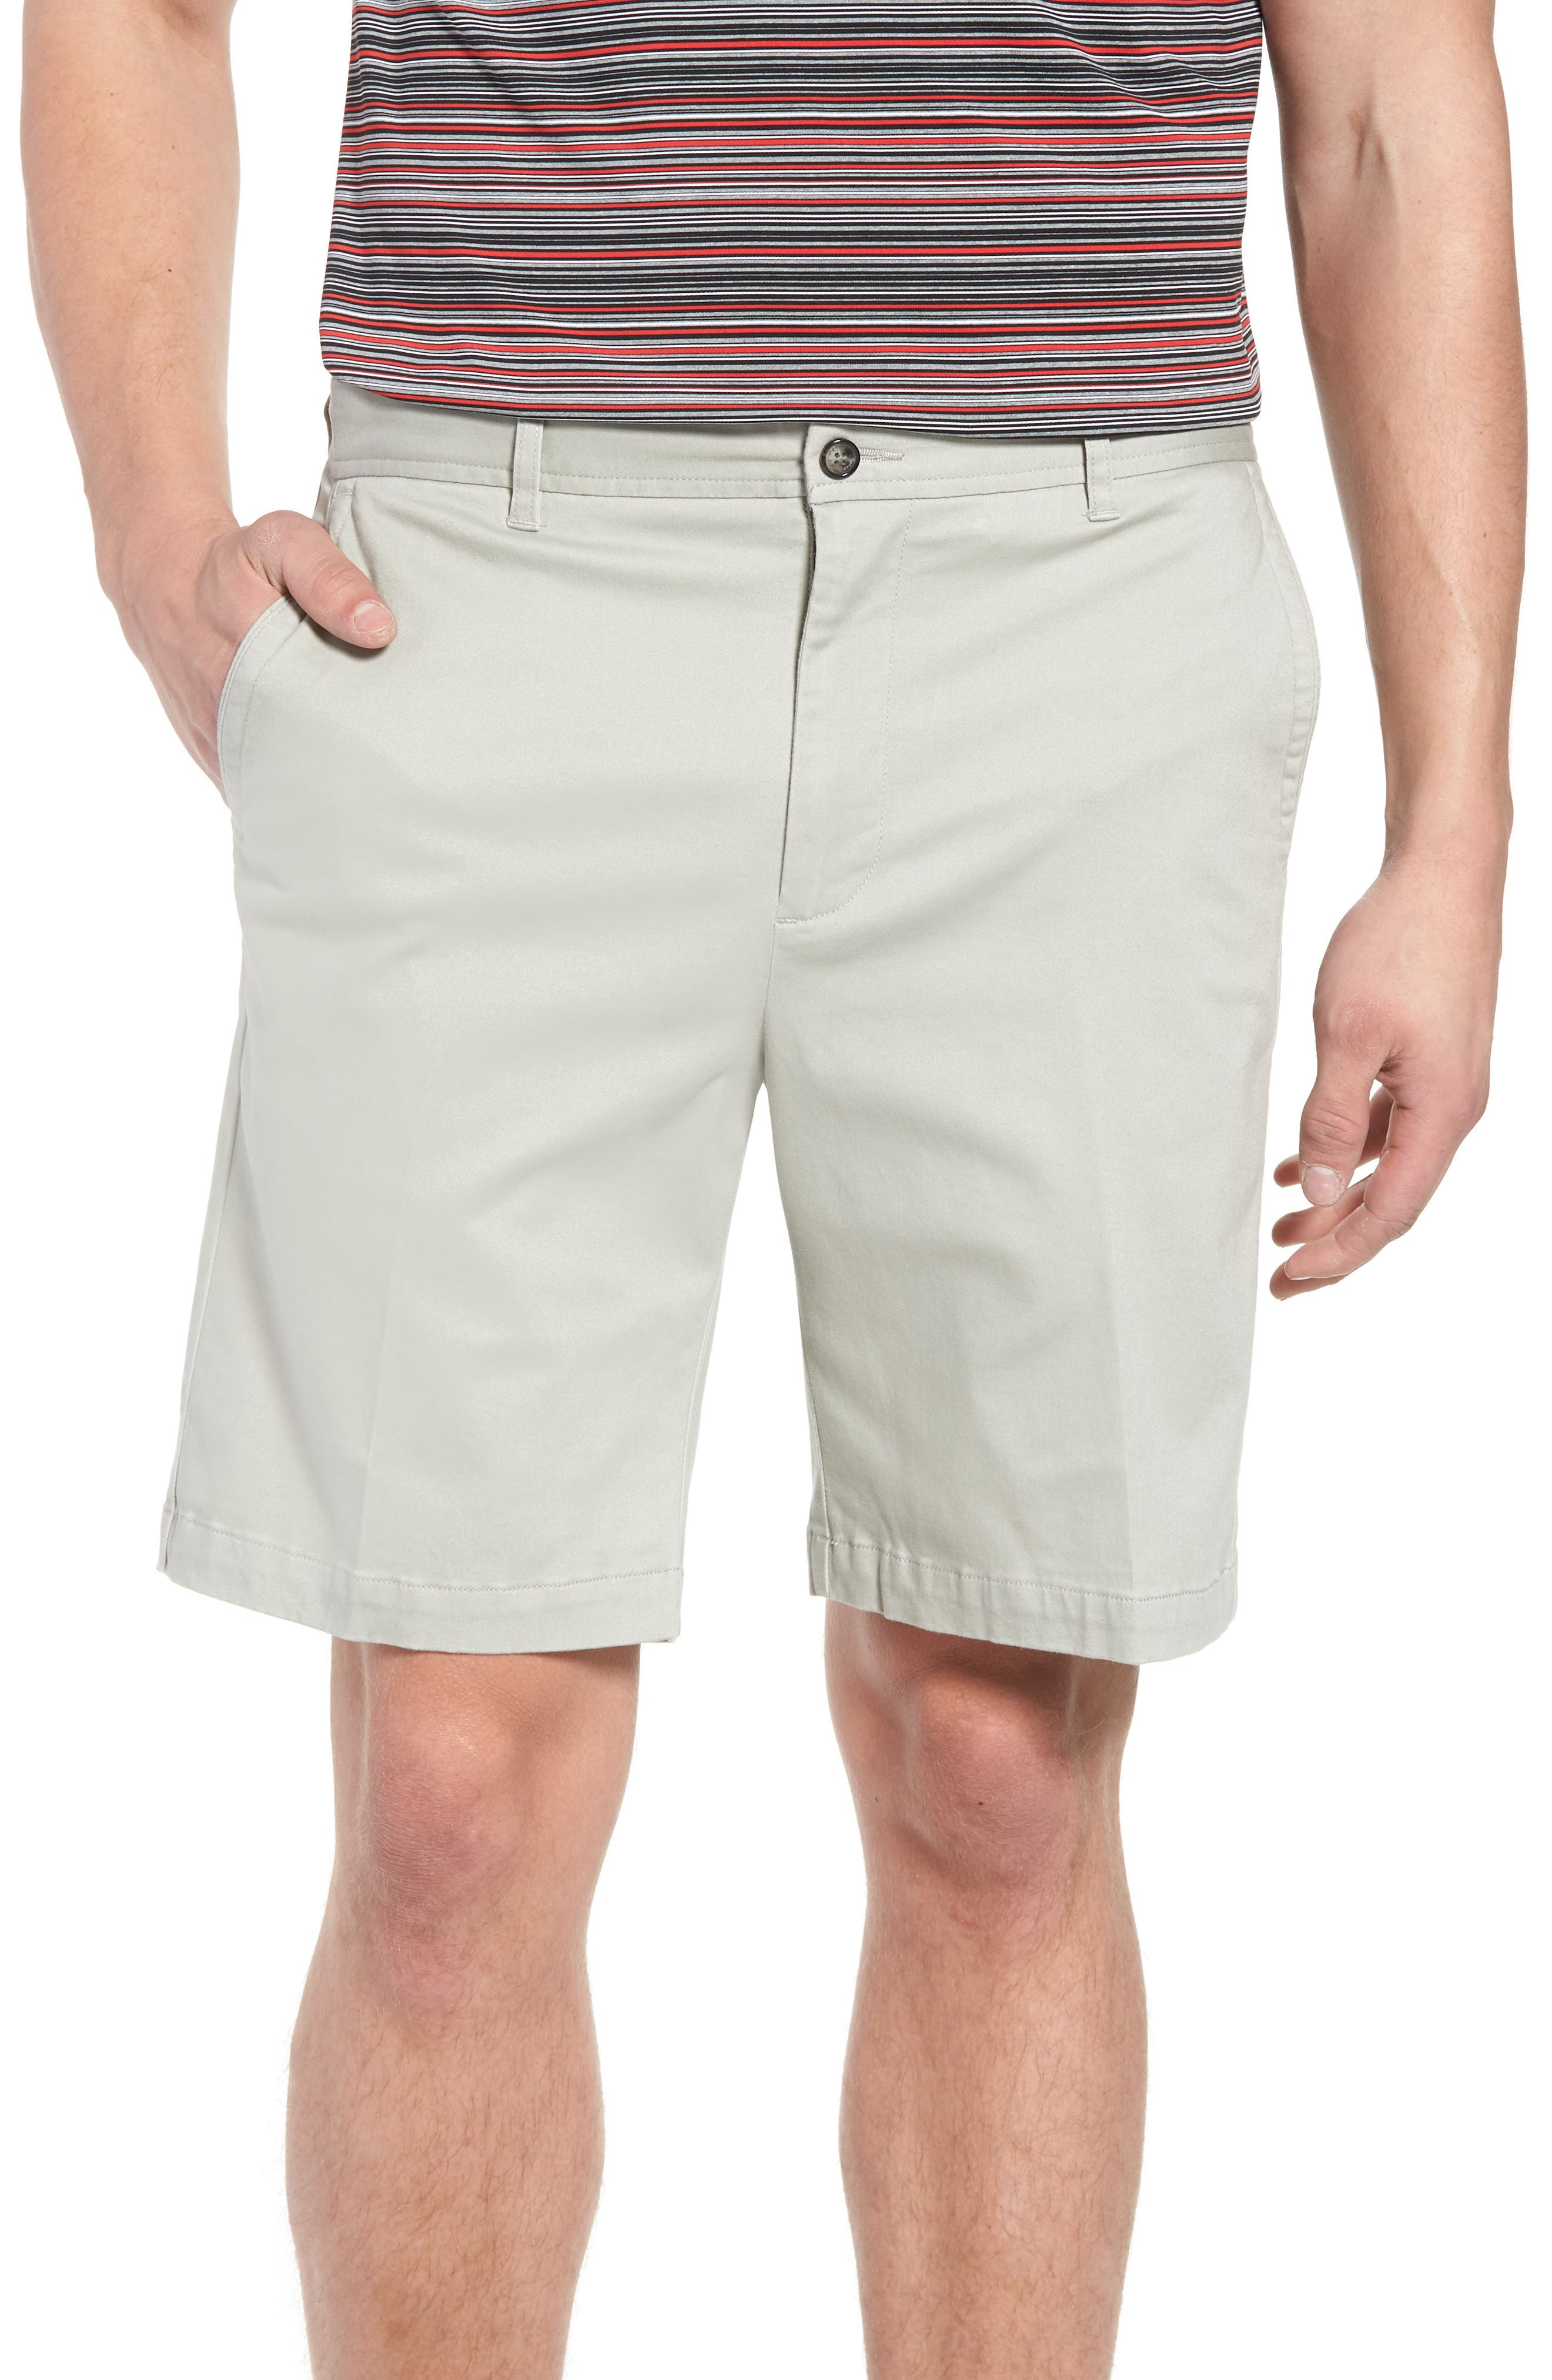 St. Charles Stretch Twill Shorts,                             Main thumbnail 1, color,                             051